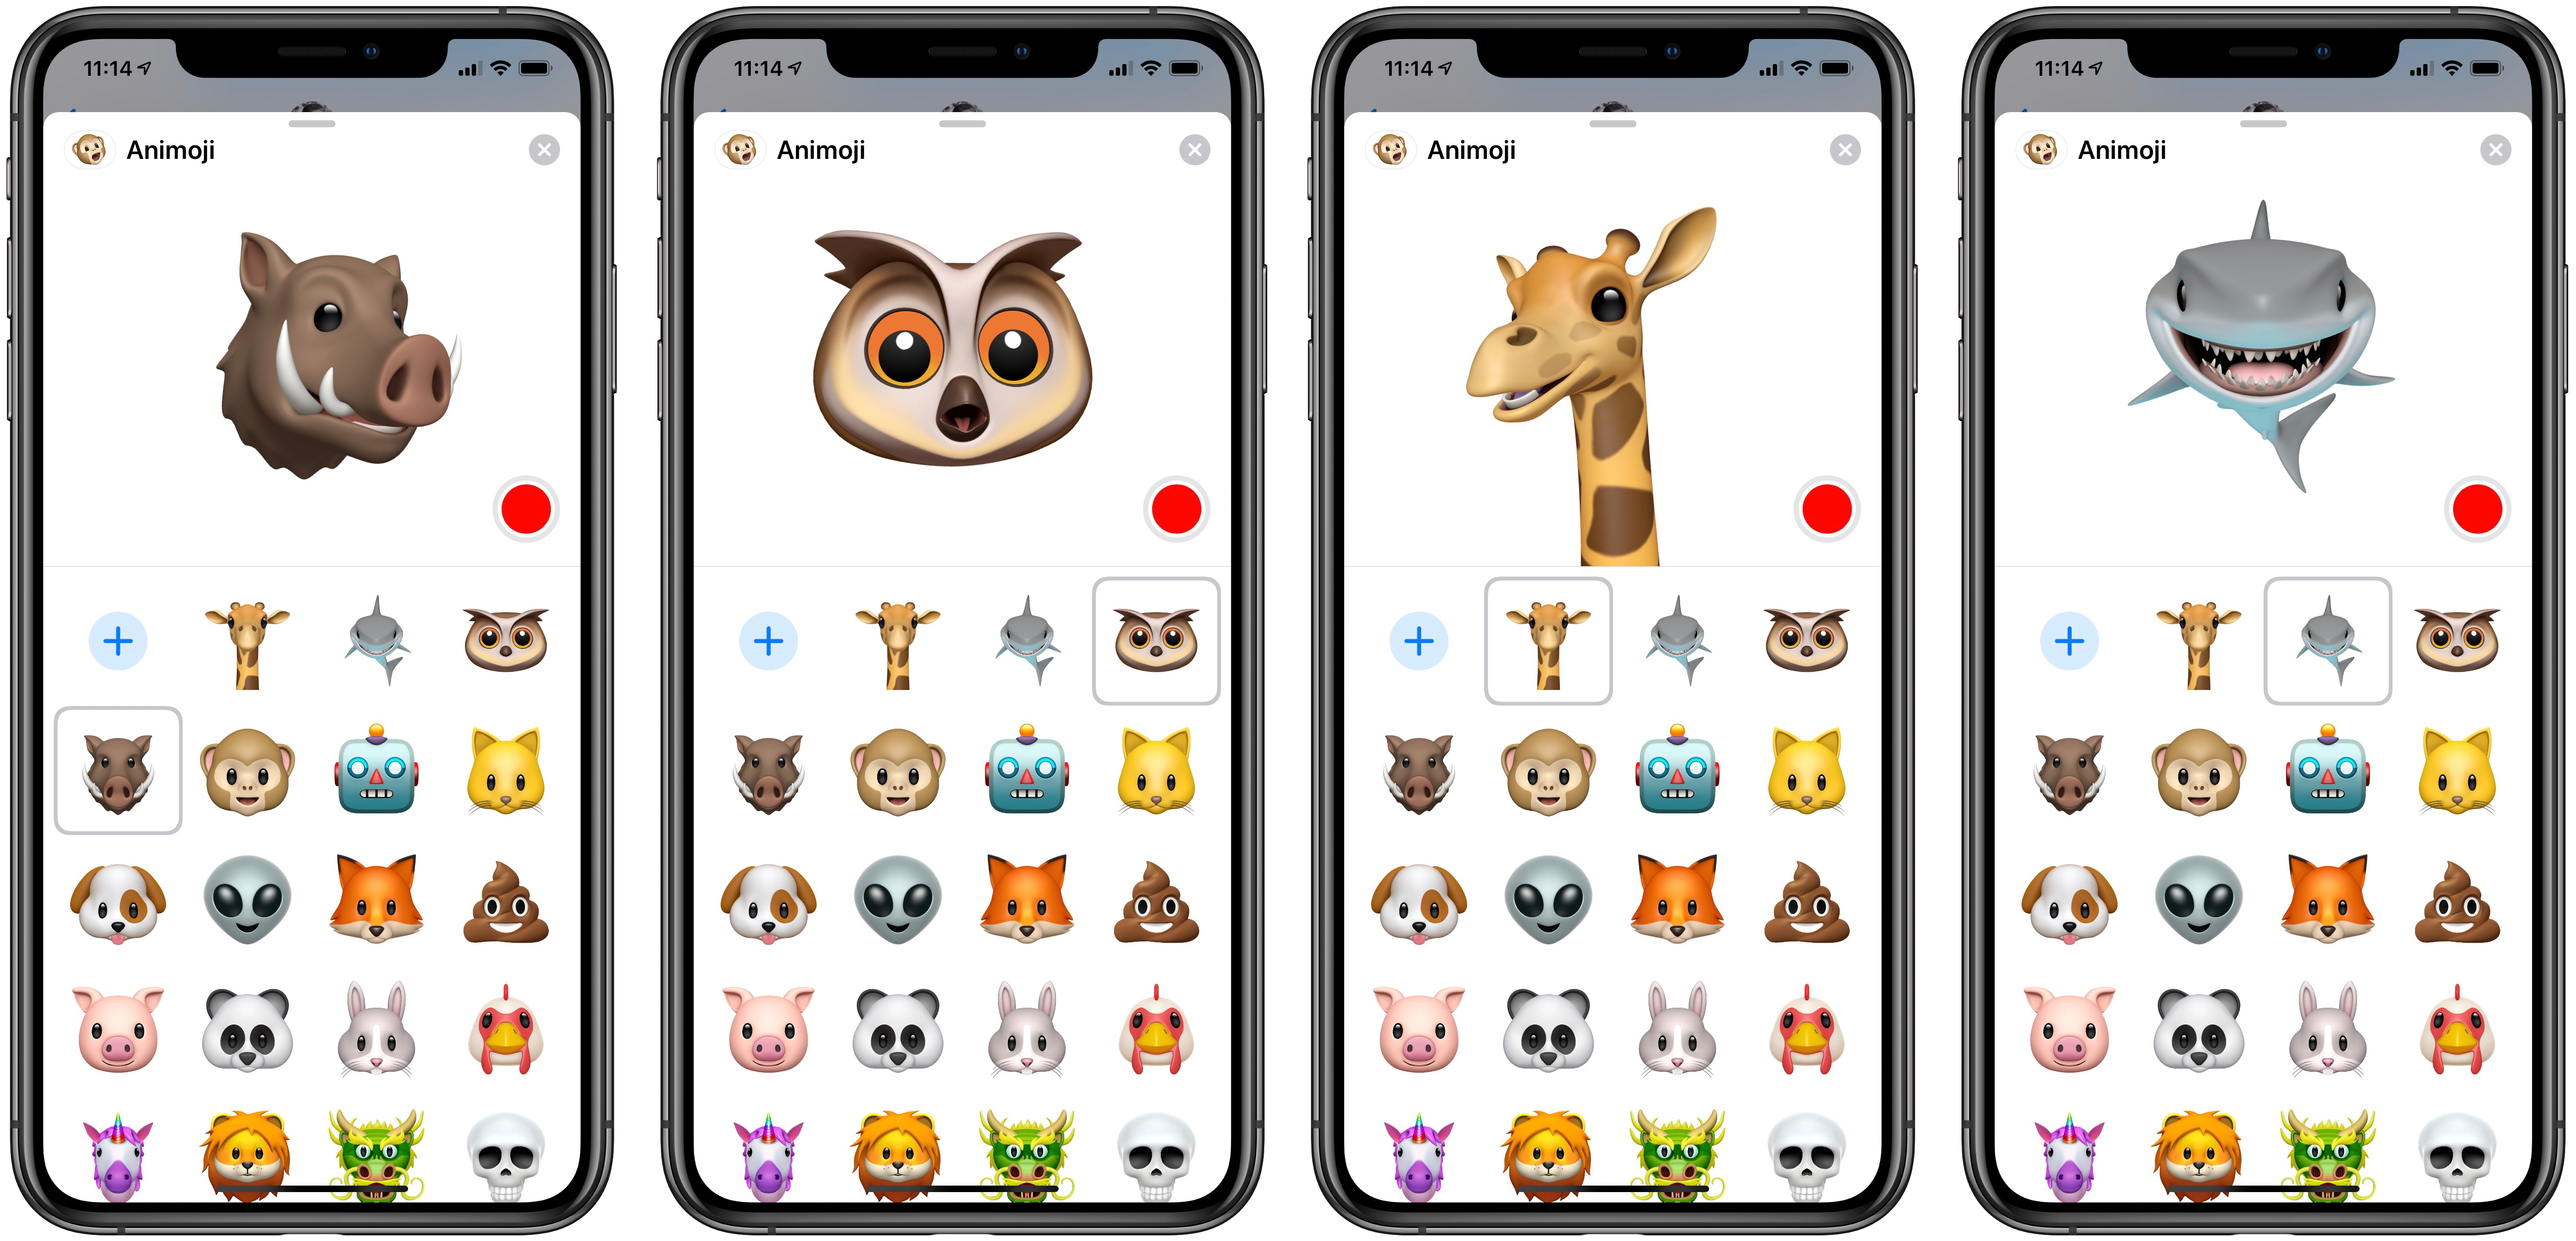 Apple Releases iOS 12.2 with Apple News+, AirPlay 2 TV Support, New Animoji, and More